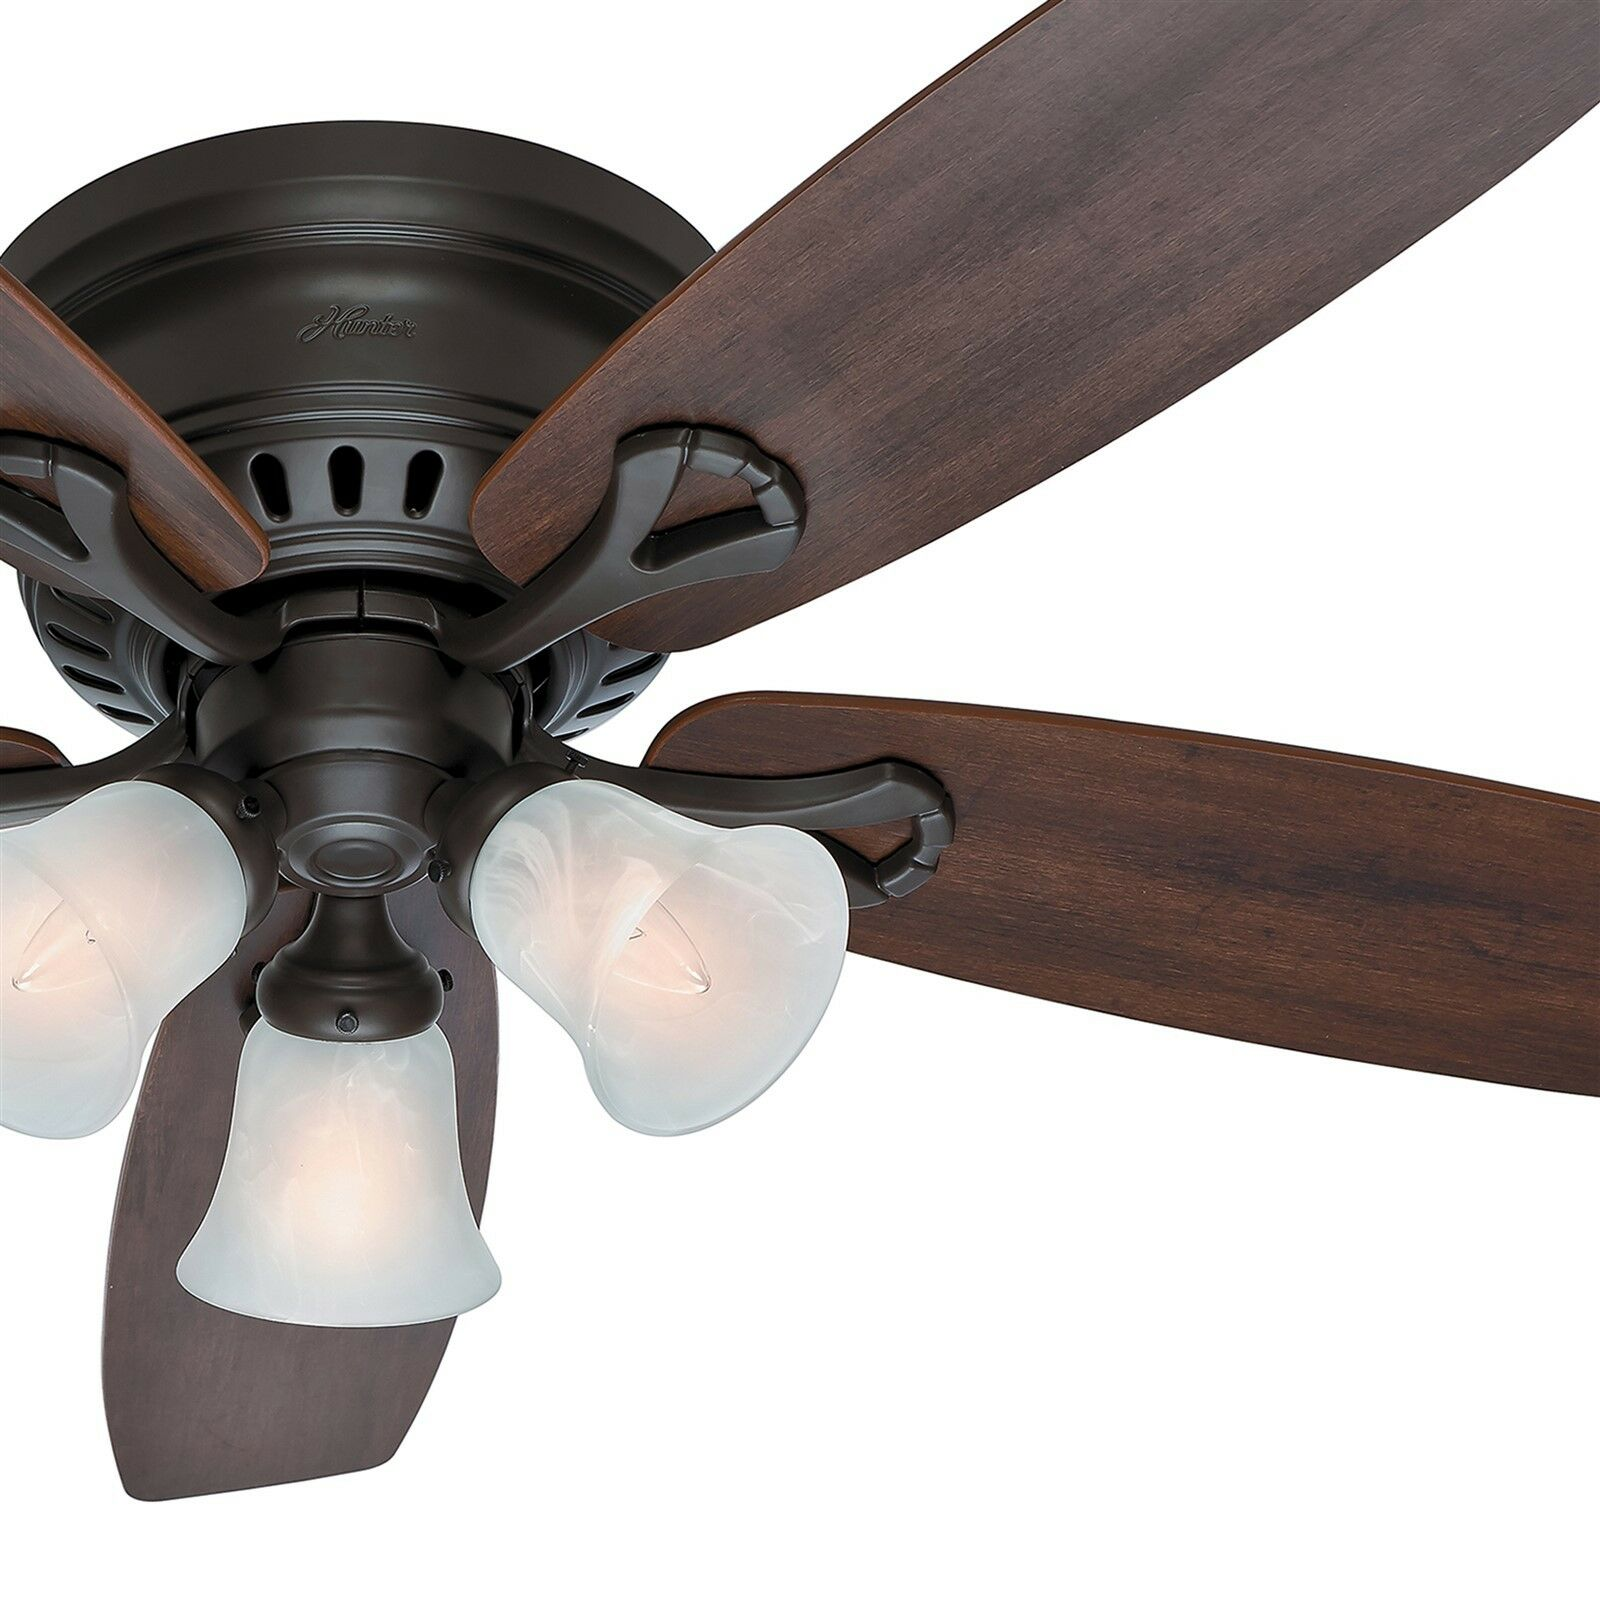 Emerson aira eco 72 inch oil rubbed bronze modern ceiling fan free - 52 Hunter New Bronze Low Profile Ceiling Fan Swirled Marble Light Kit